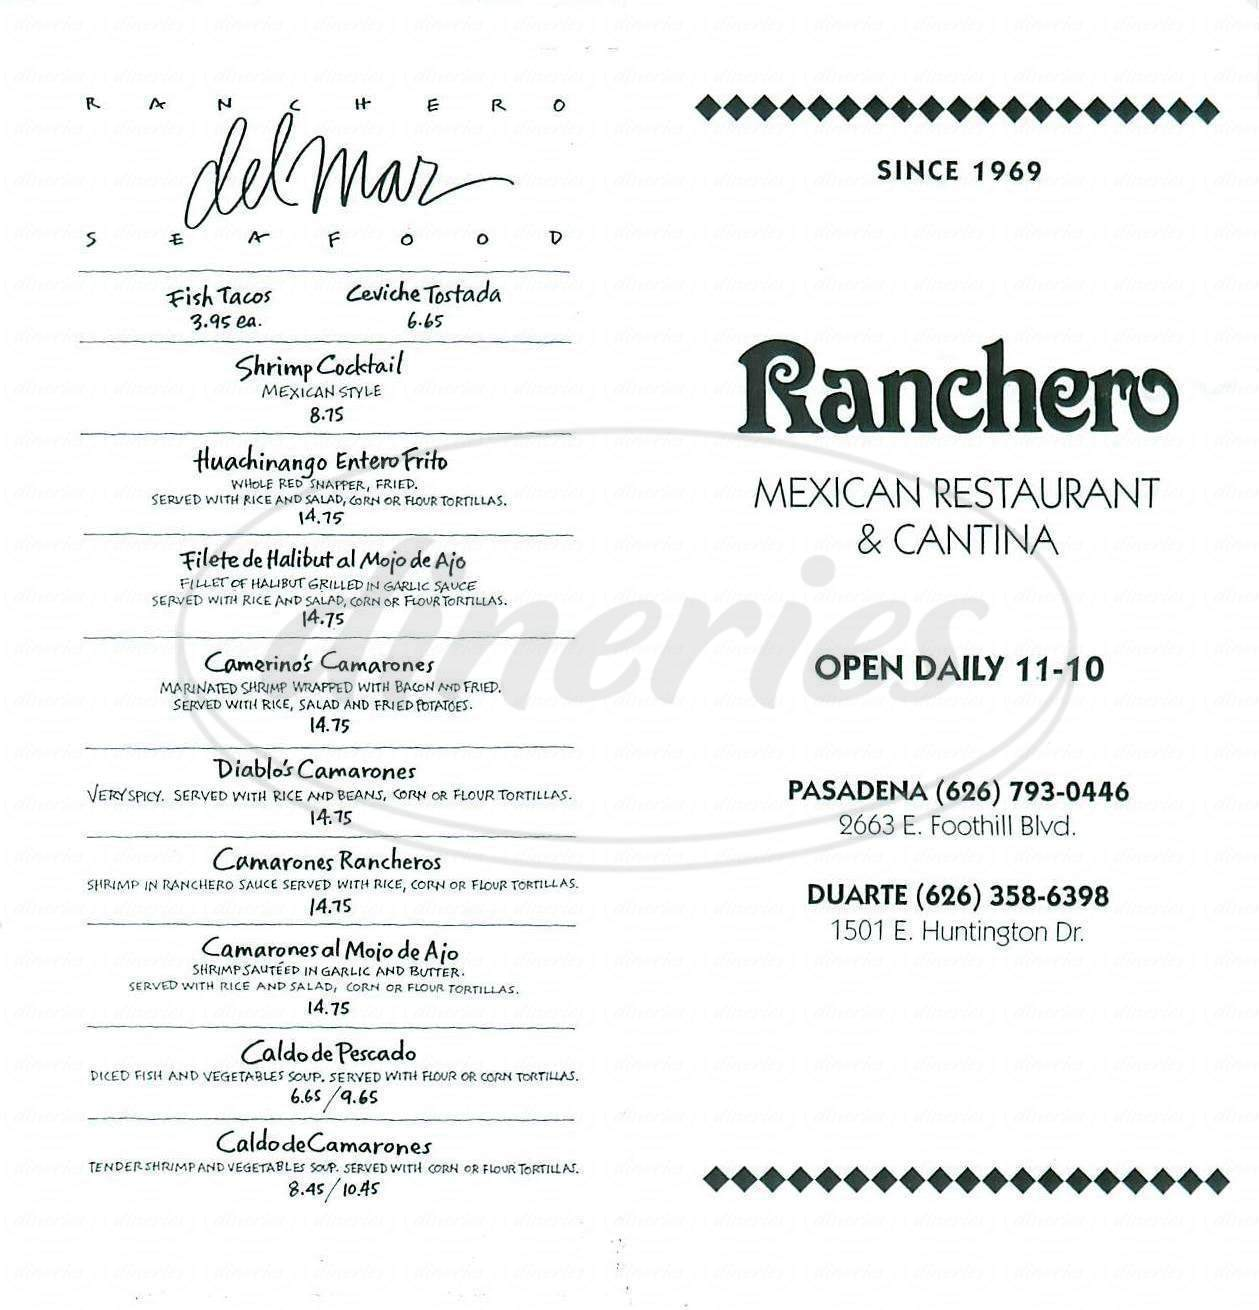 menu for Ranchero Mexican Restaurant